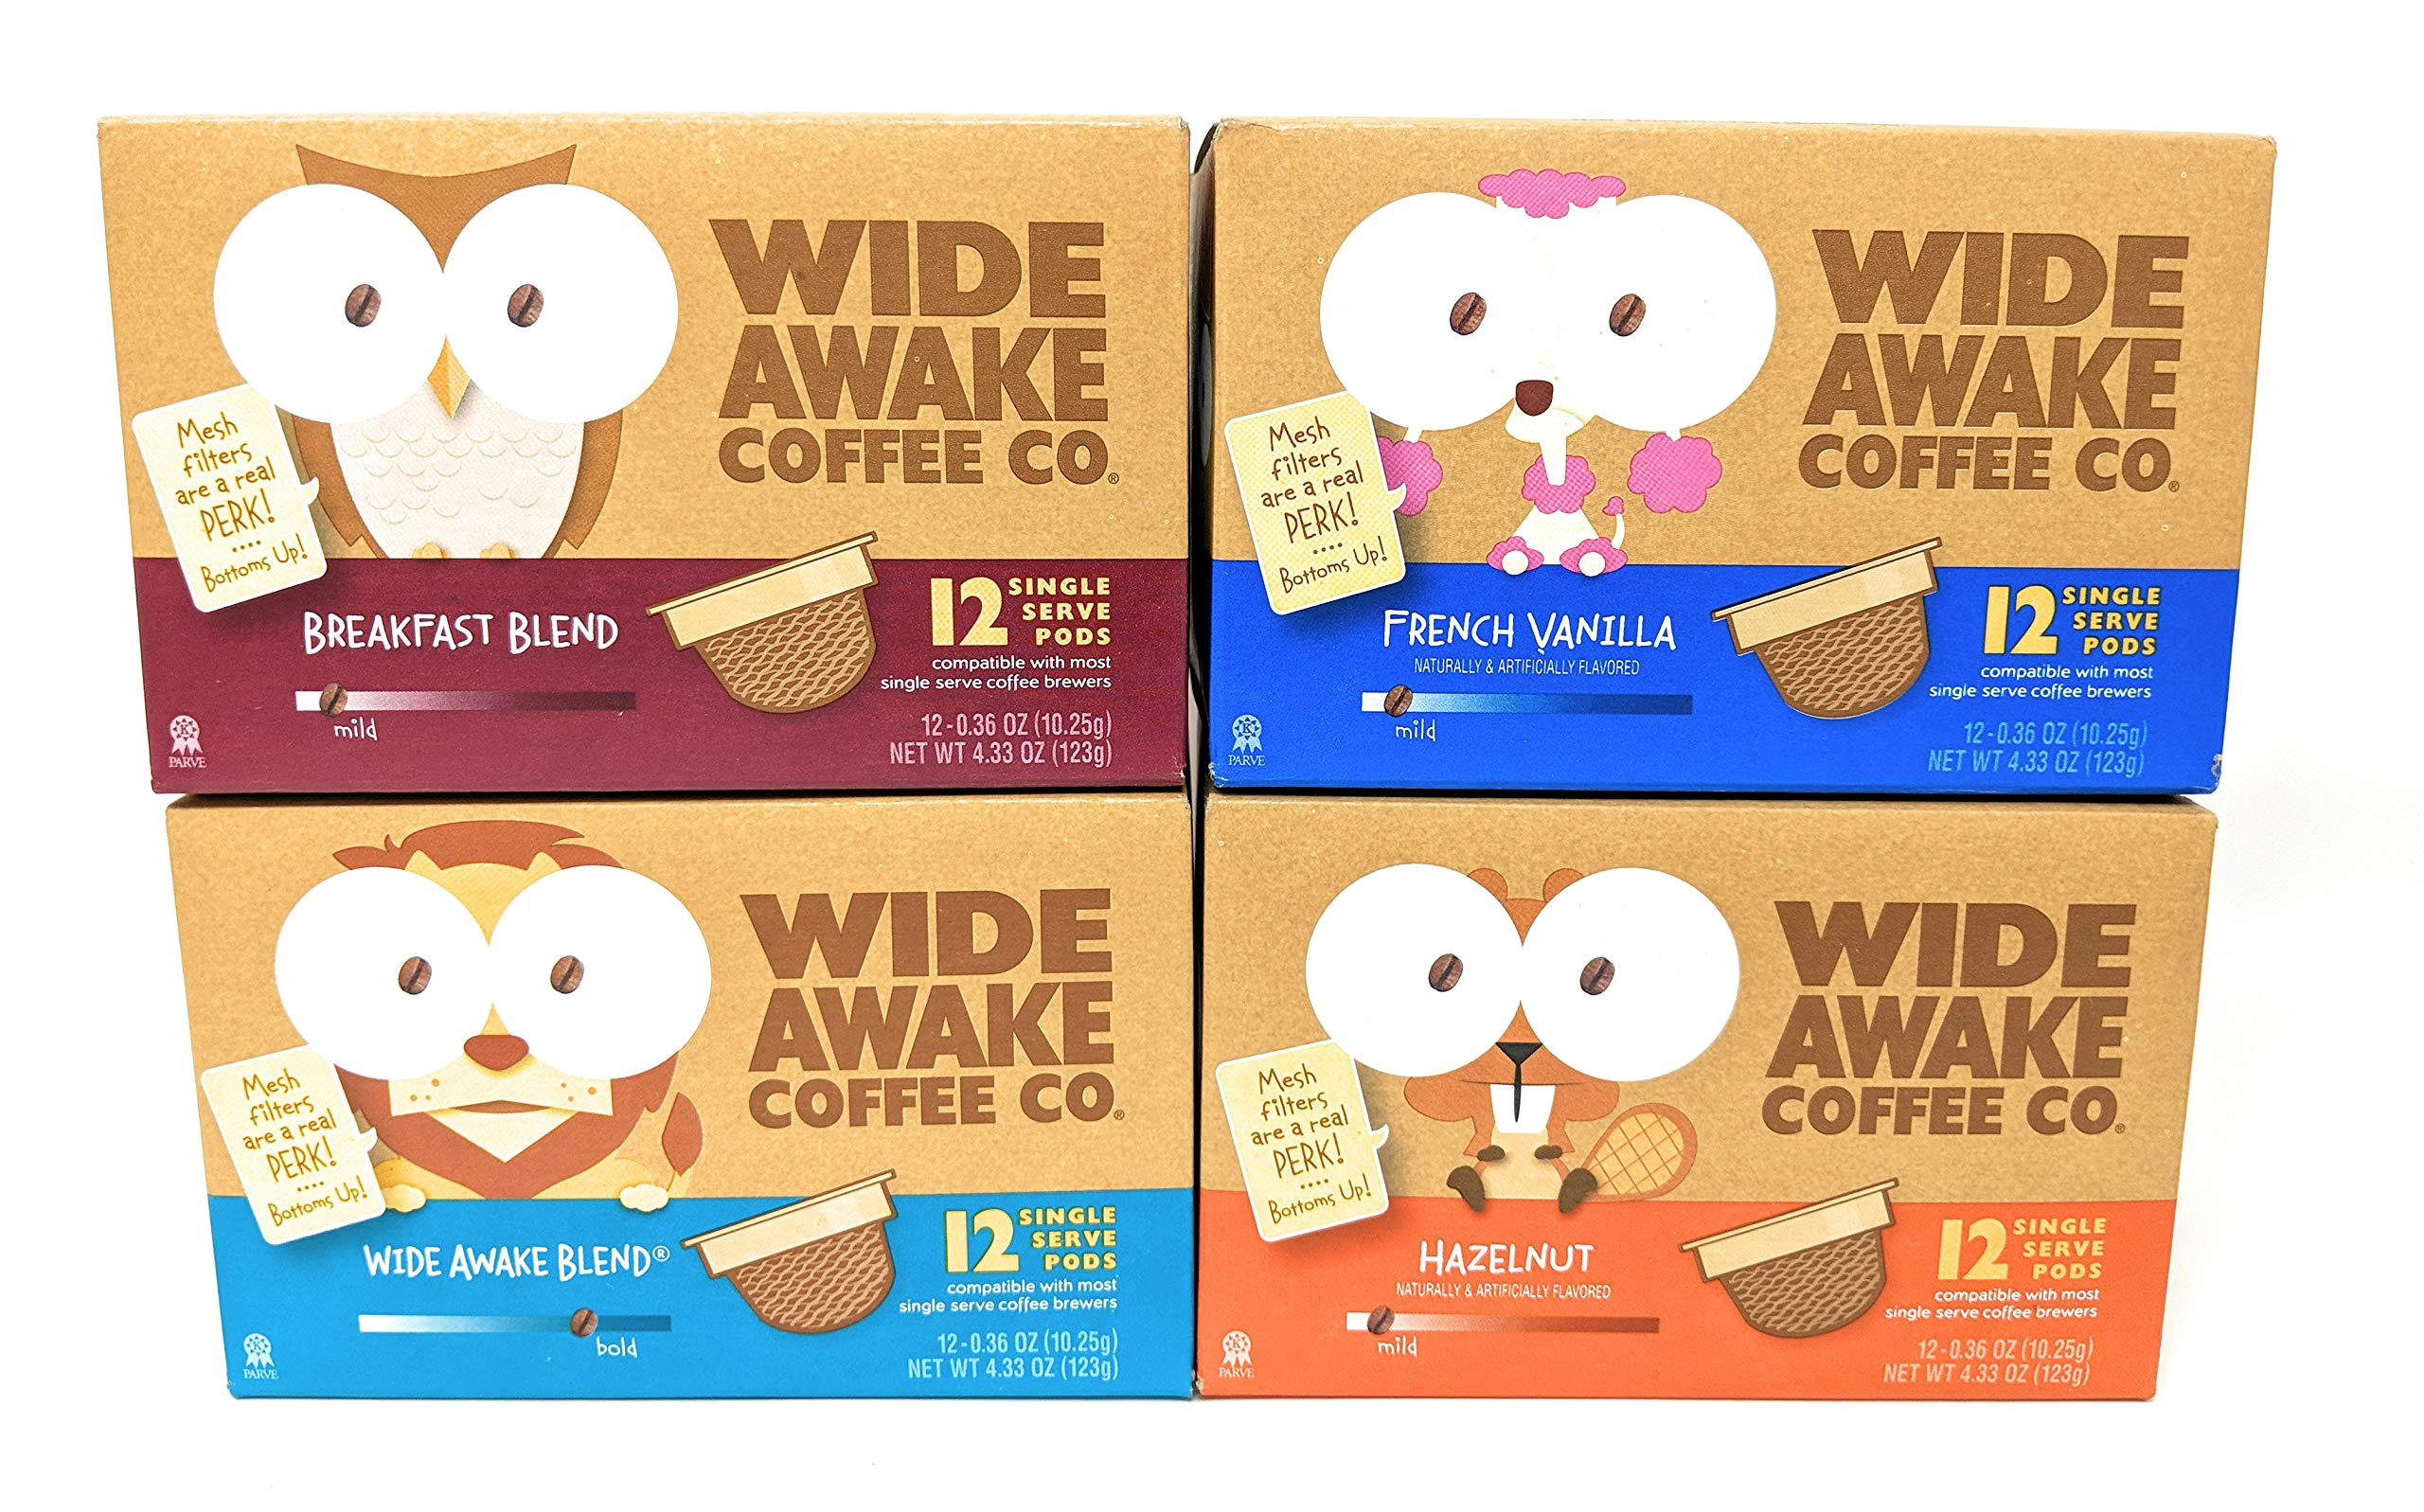 Wide Awake Coffee, 12 K-cups, Variety Pack (Pack of 4): Amazon.com: Grocery & Gourmet Food